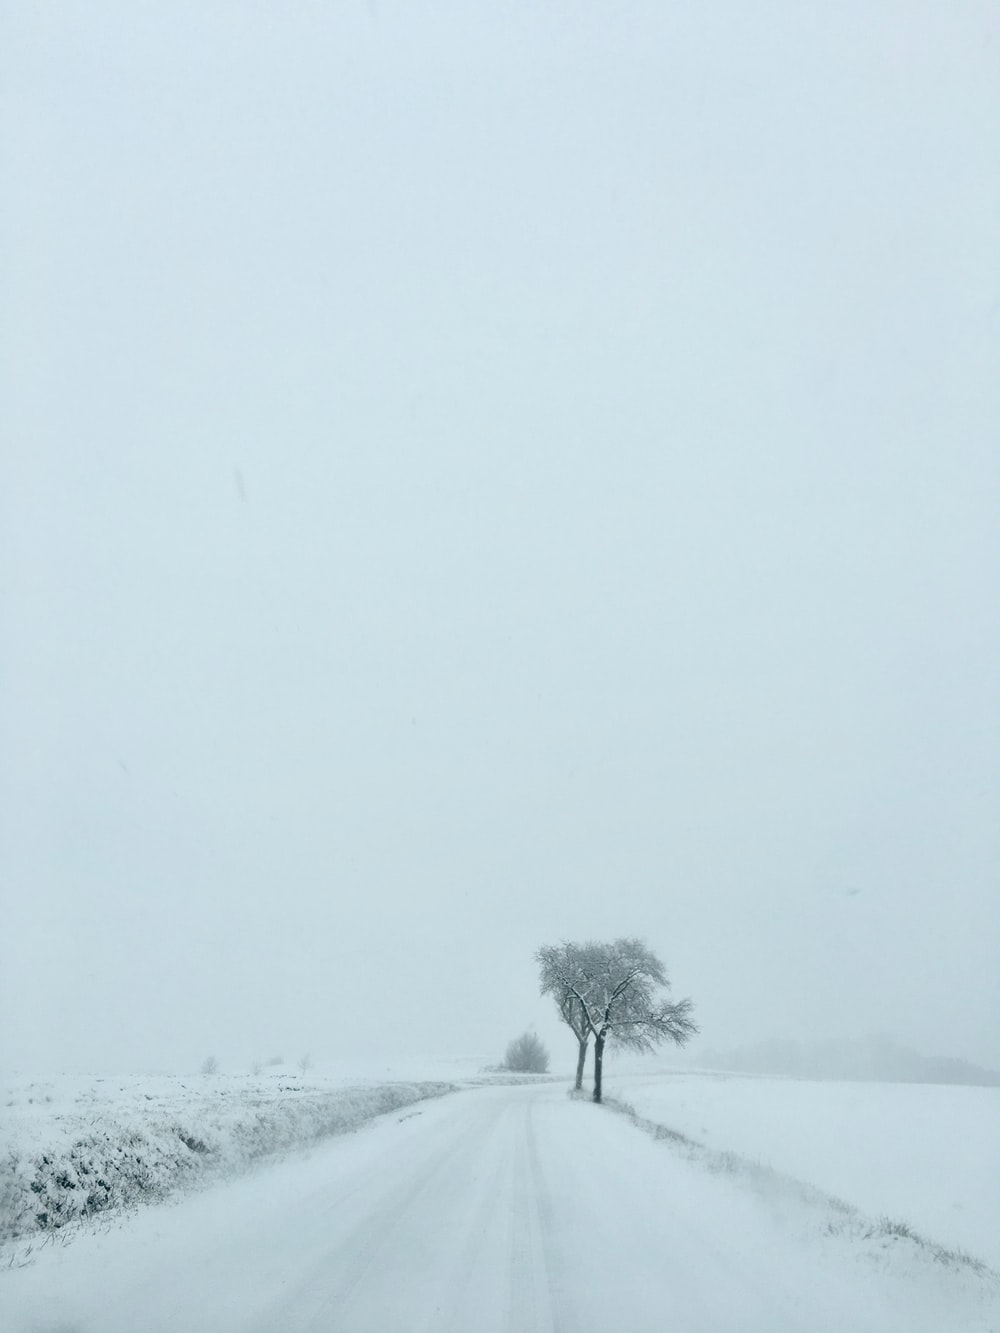 snow-covered road and tree on a cloudy day